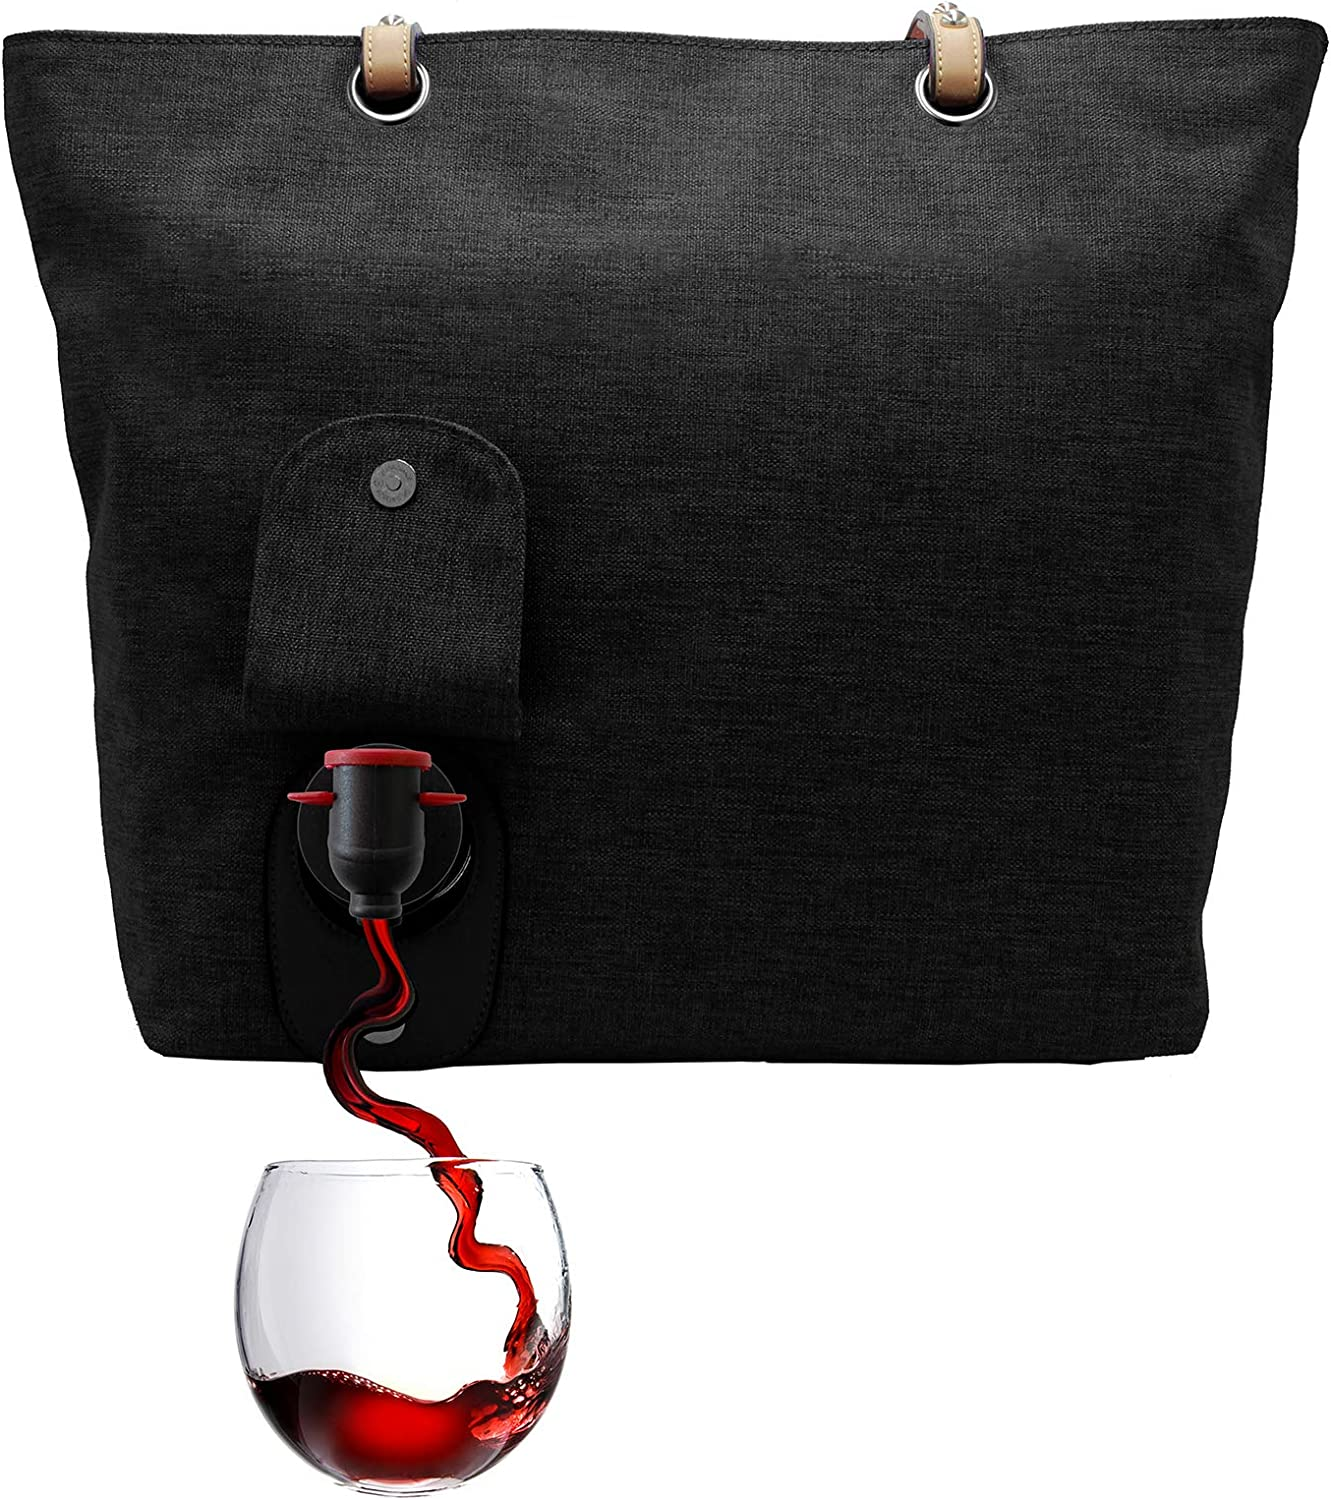 PortoVino City Wine Tote Black - Fashionable Wine Purse with Hidden, Insulated Compartment, Holds 2 Bottles of Wine! Great Gift! - Happiness Guaranteed!